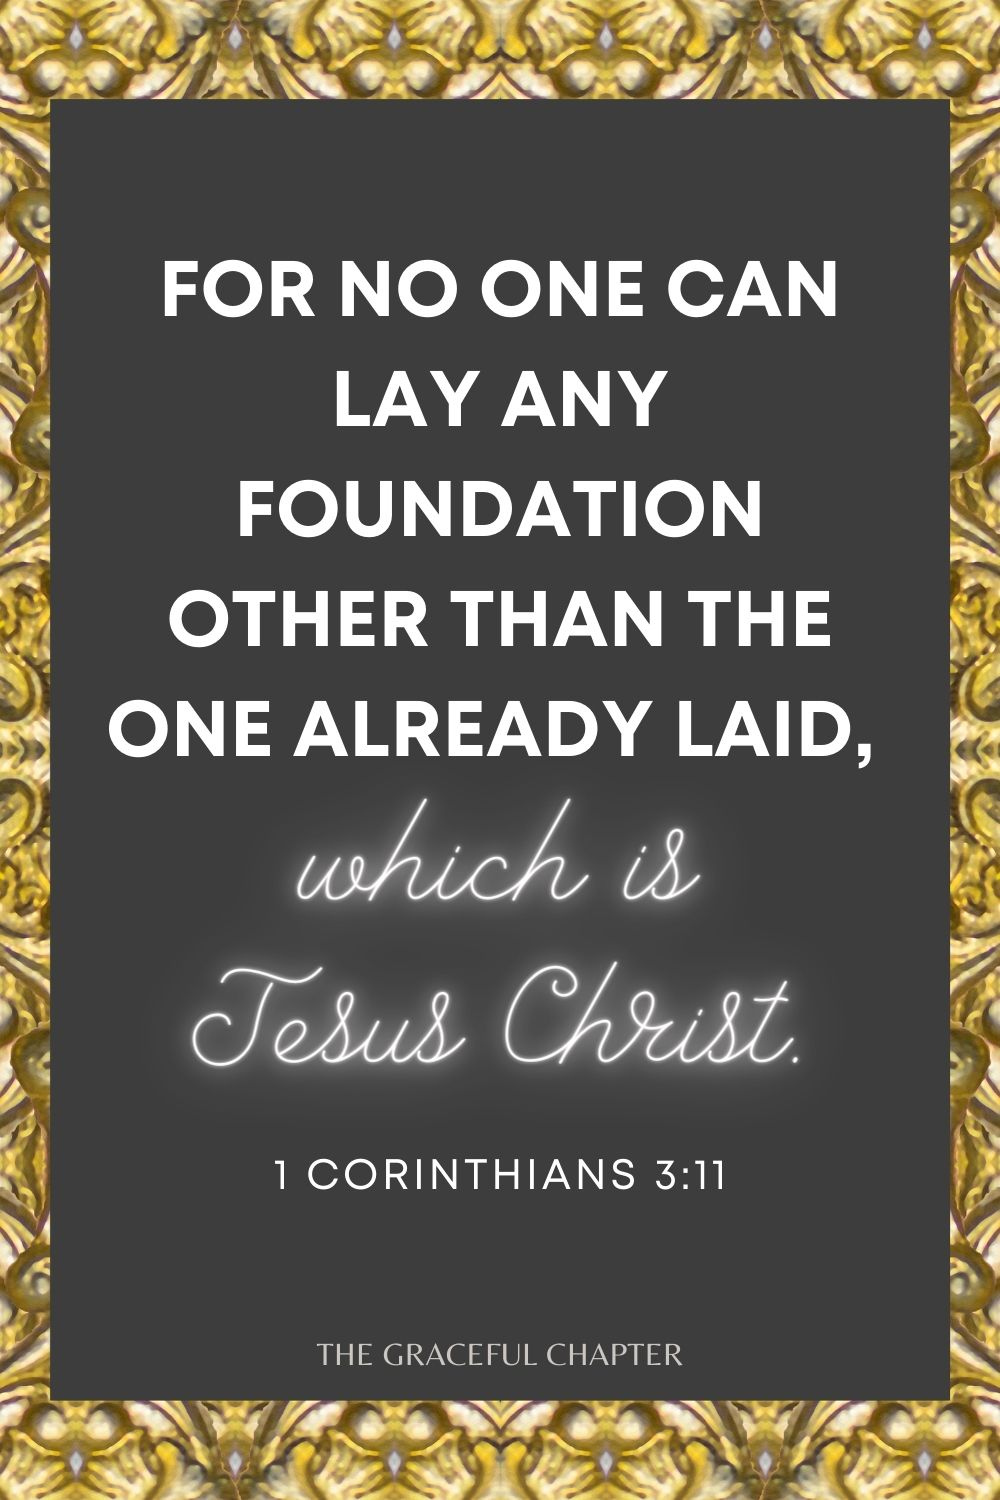 For no one can lay any foundation other than the one already laid, which is Jesus Christ. For no one can lay any foundation other than the one already laid, which is Jesus Christ. 1 Corinthians 3:11